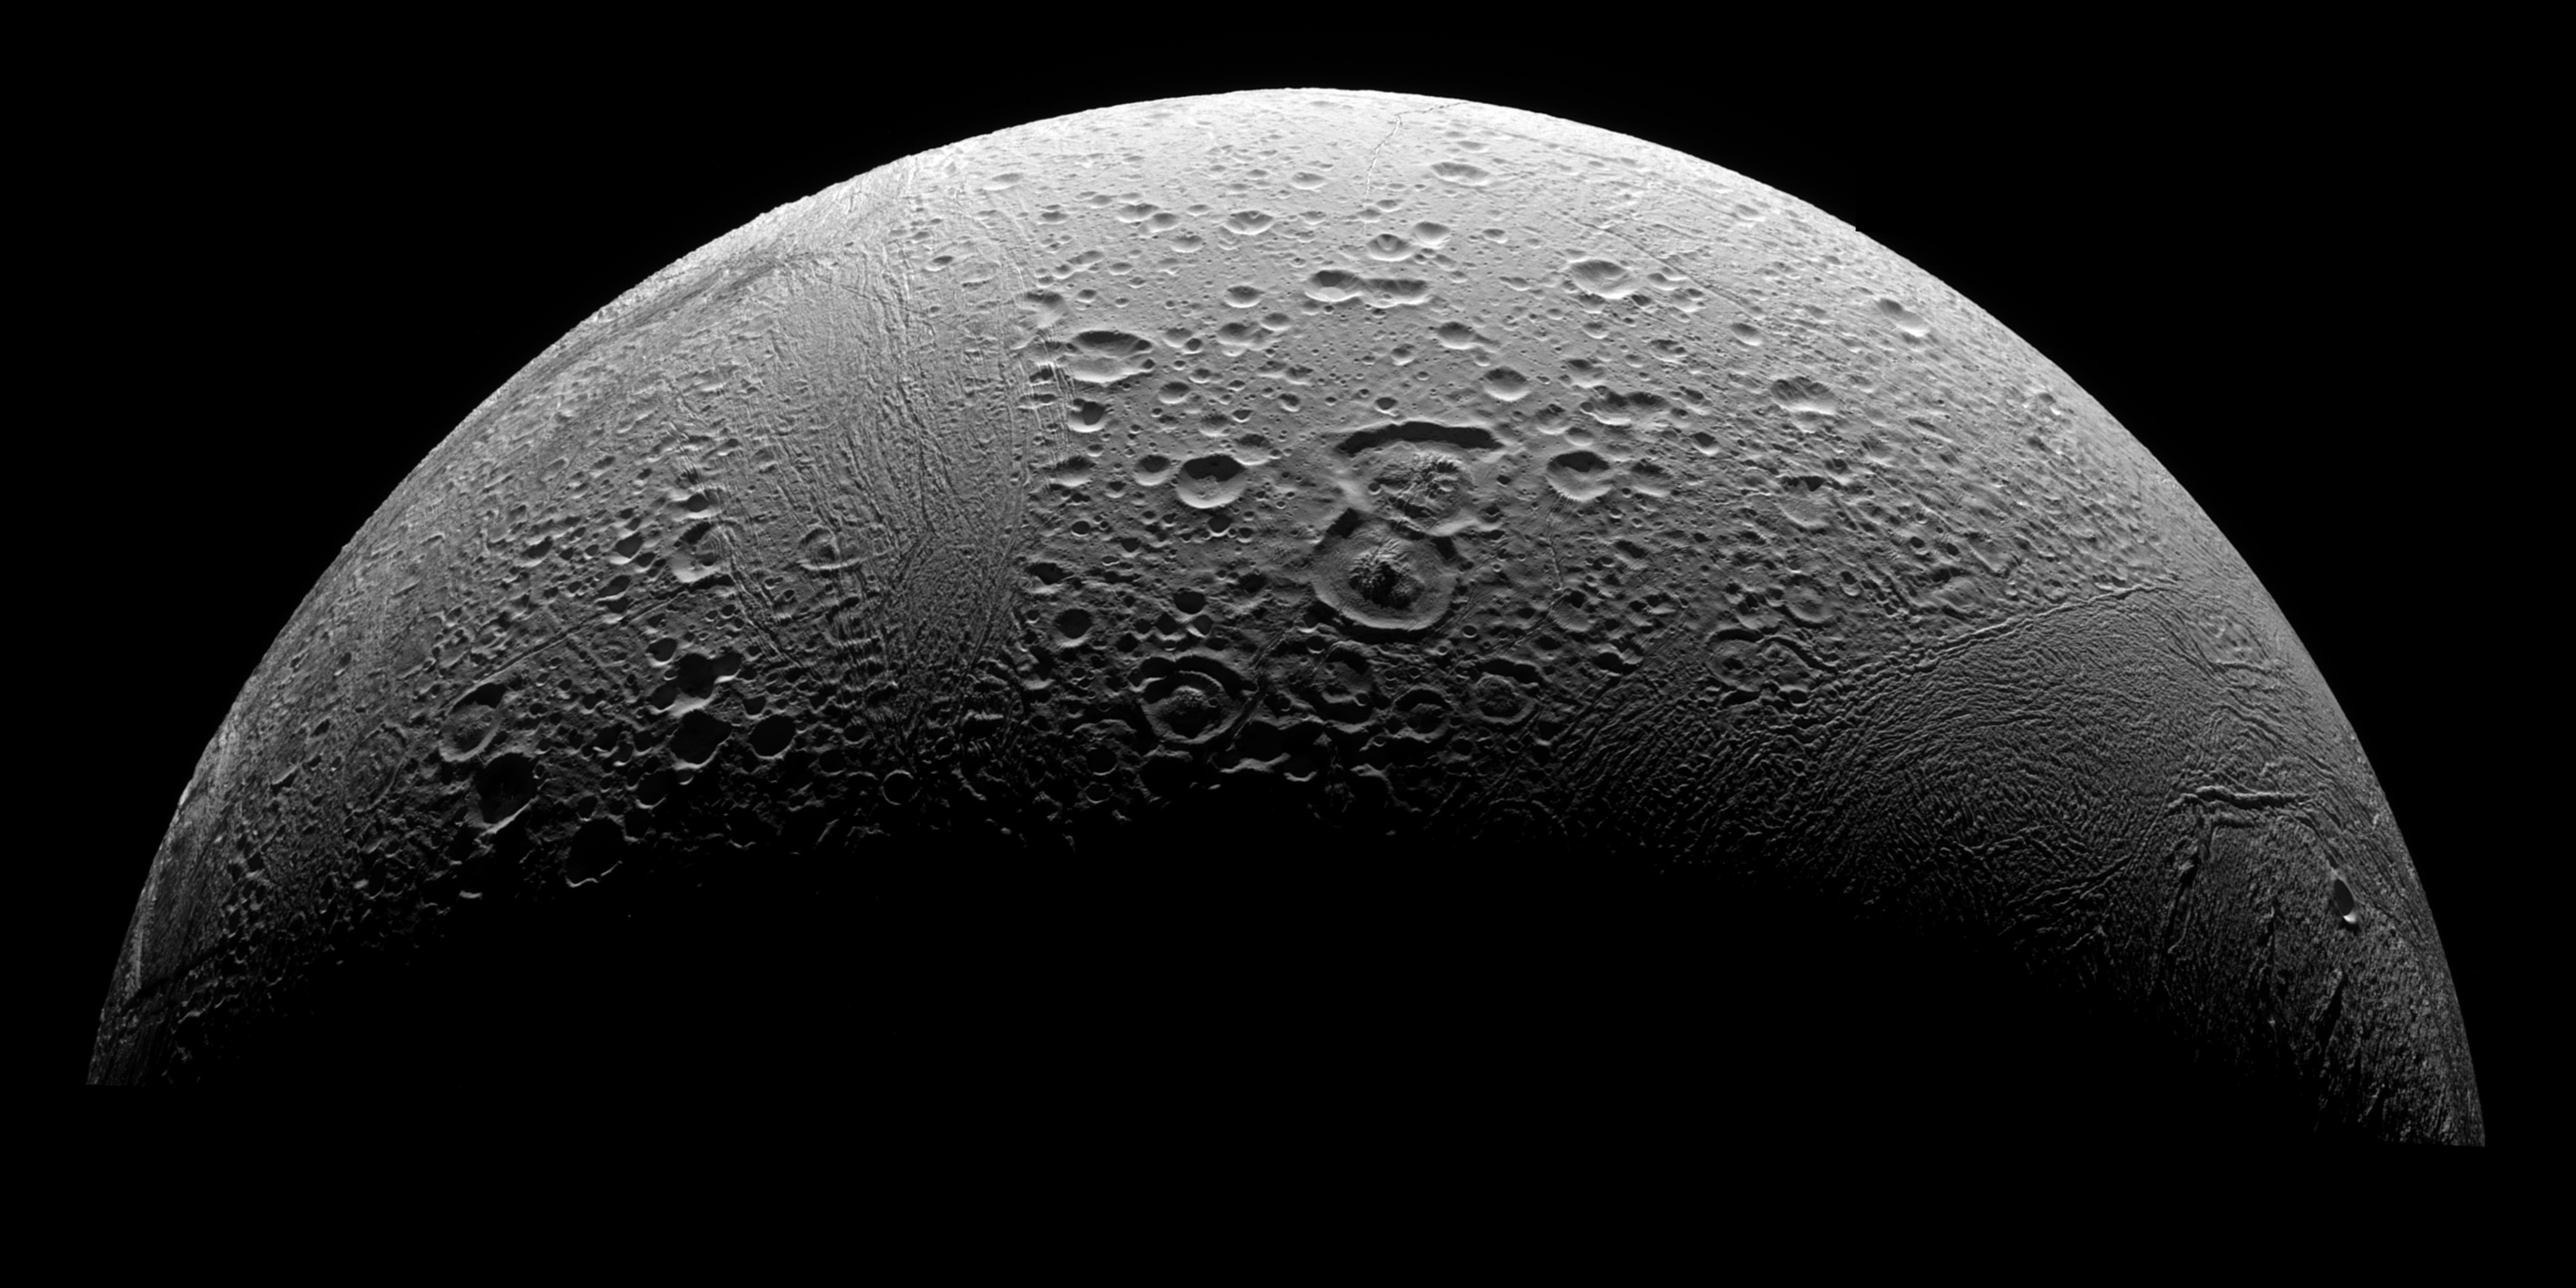 Could life exist on Saturn's moon Enceladus?